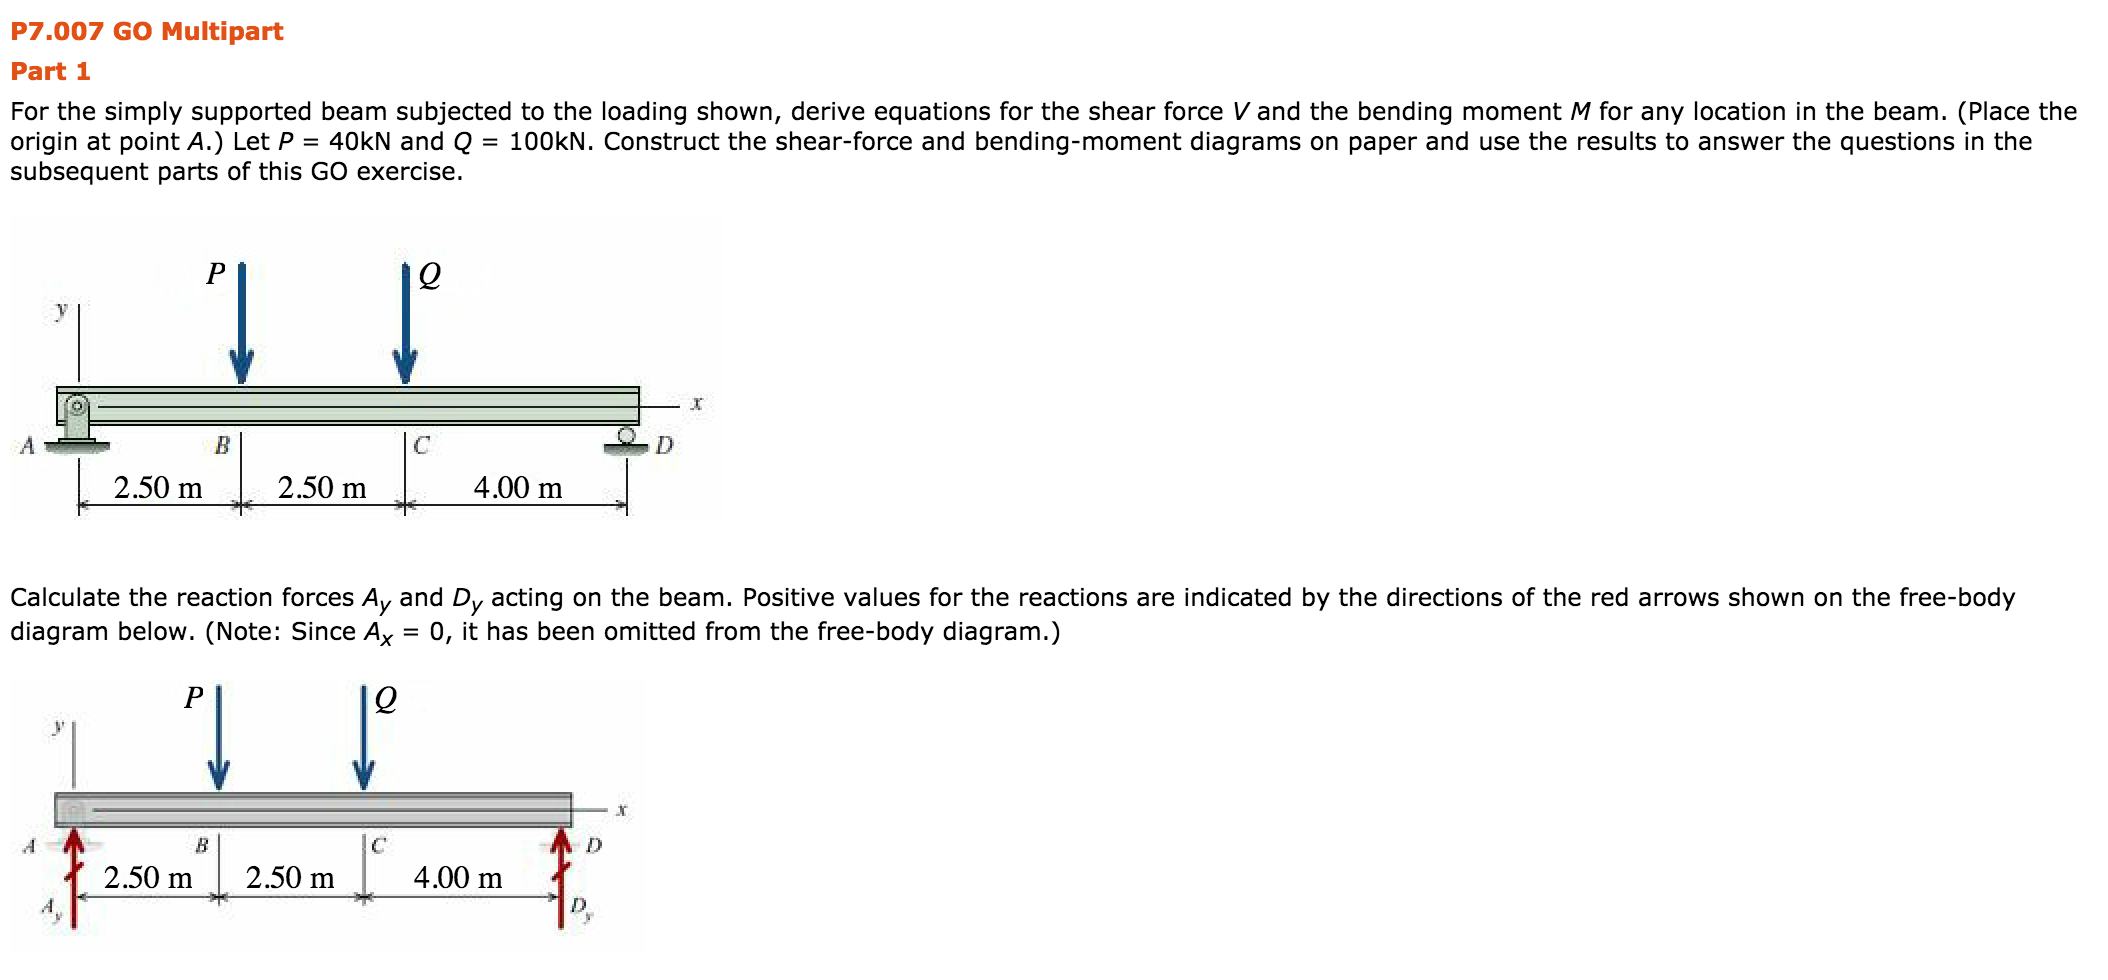 Simply Supported Beam Shear Draw Force And Bending Moment Diagrams For The Shownin P Go Multipart Part Subjected To Loading 2108x980